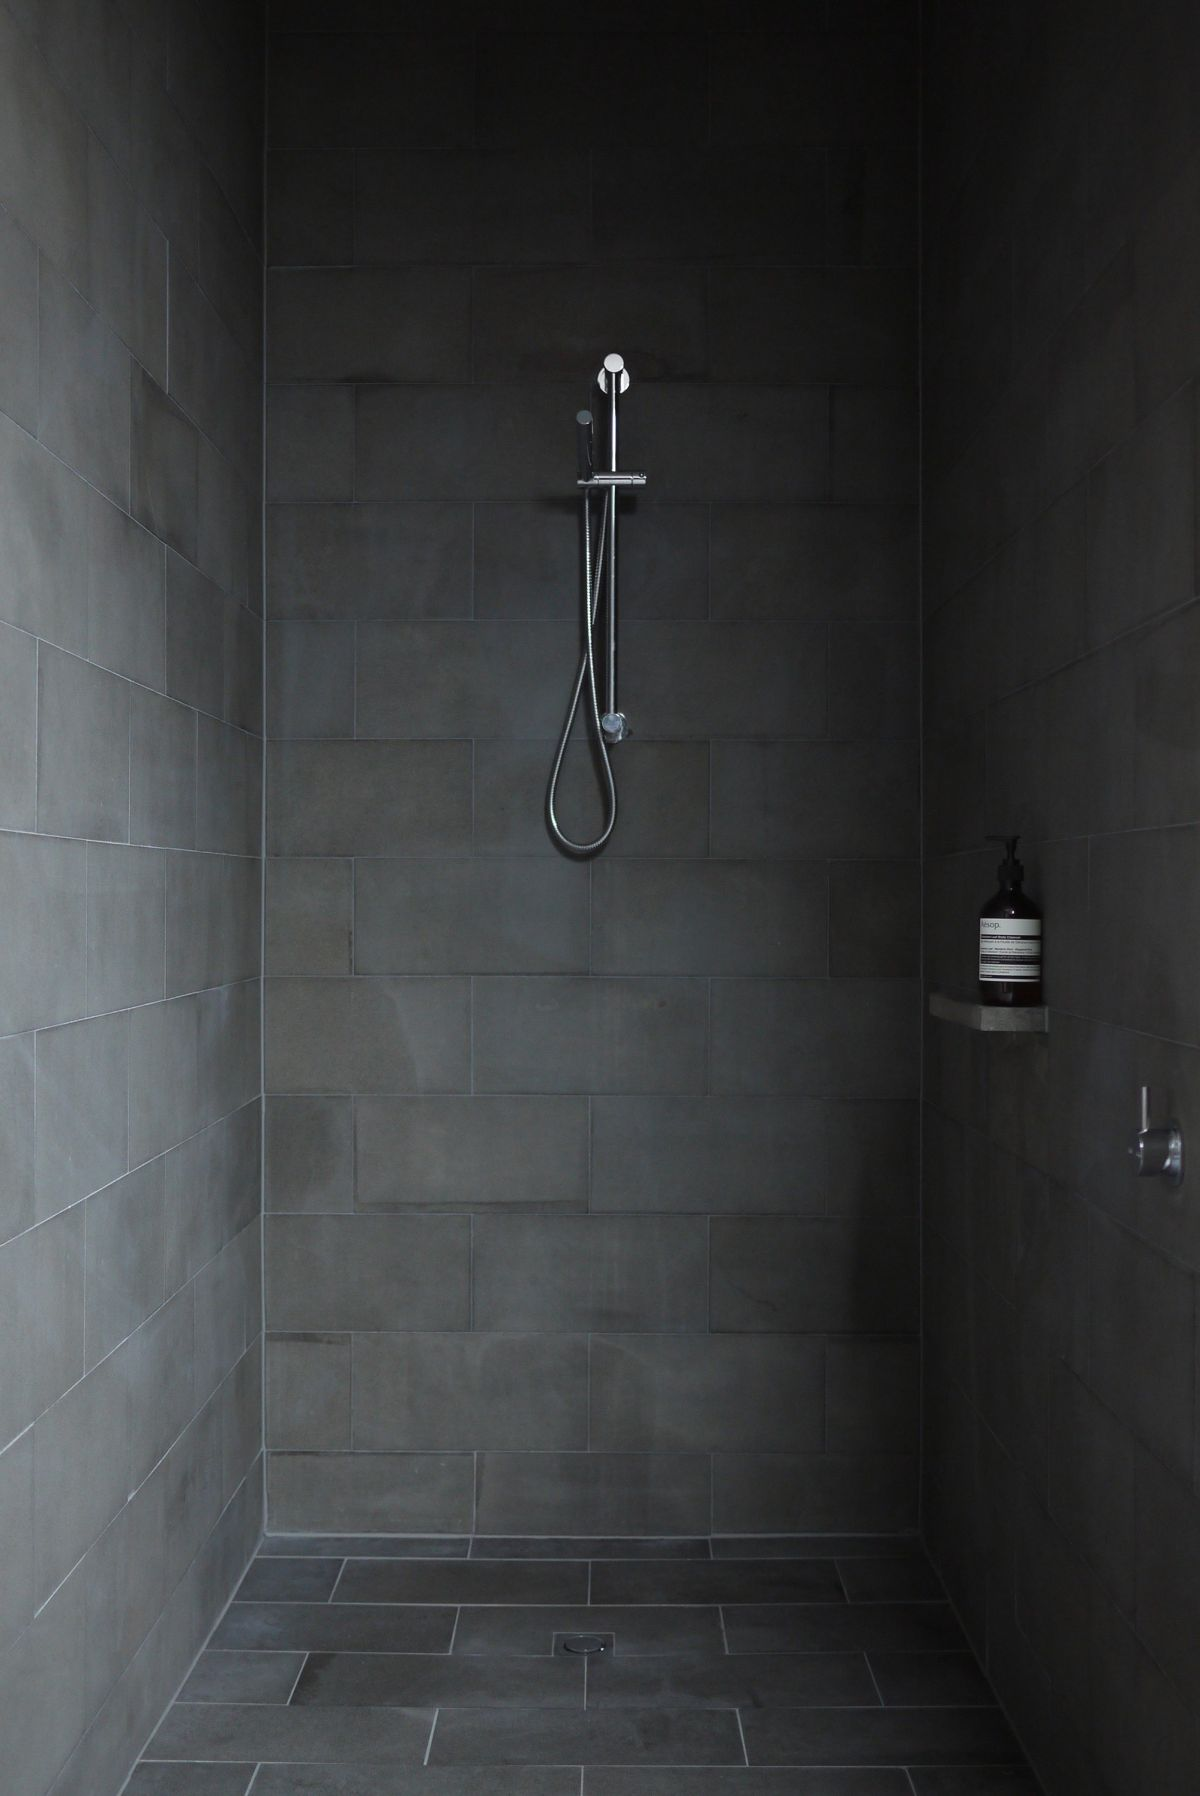 Shower floor ideas that reveal the best materials for the job view in gallery dailygadgetfo Choice Image